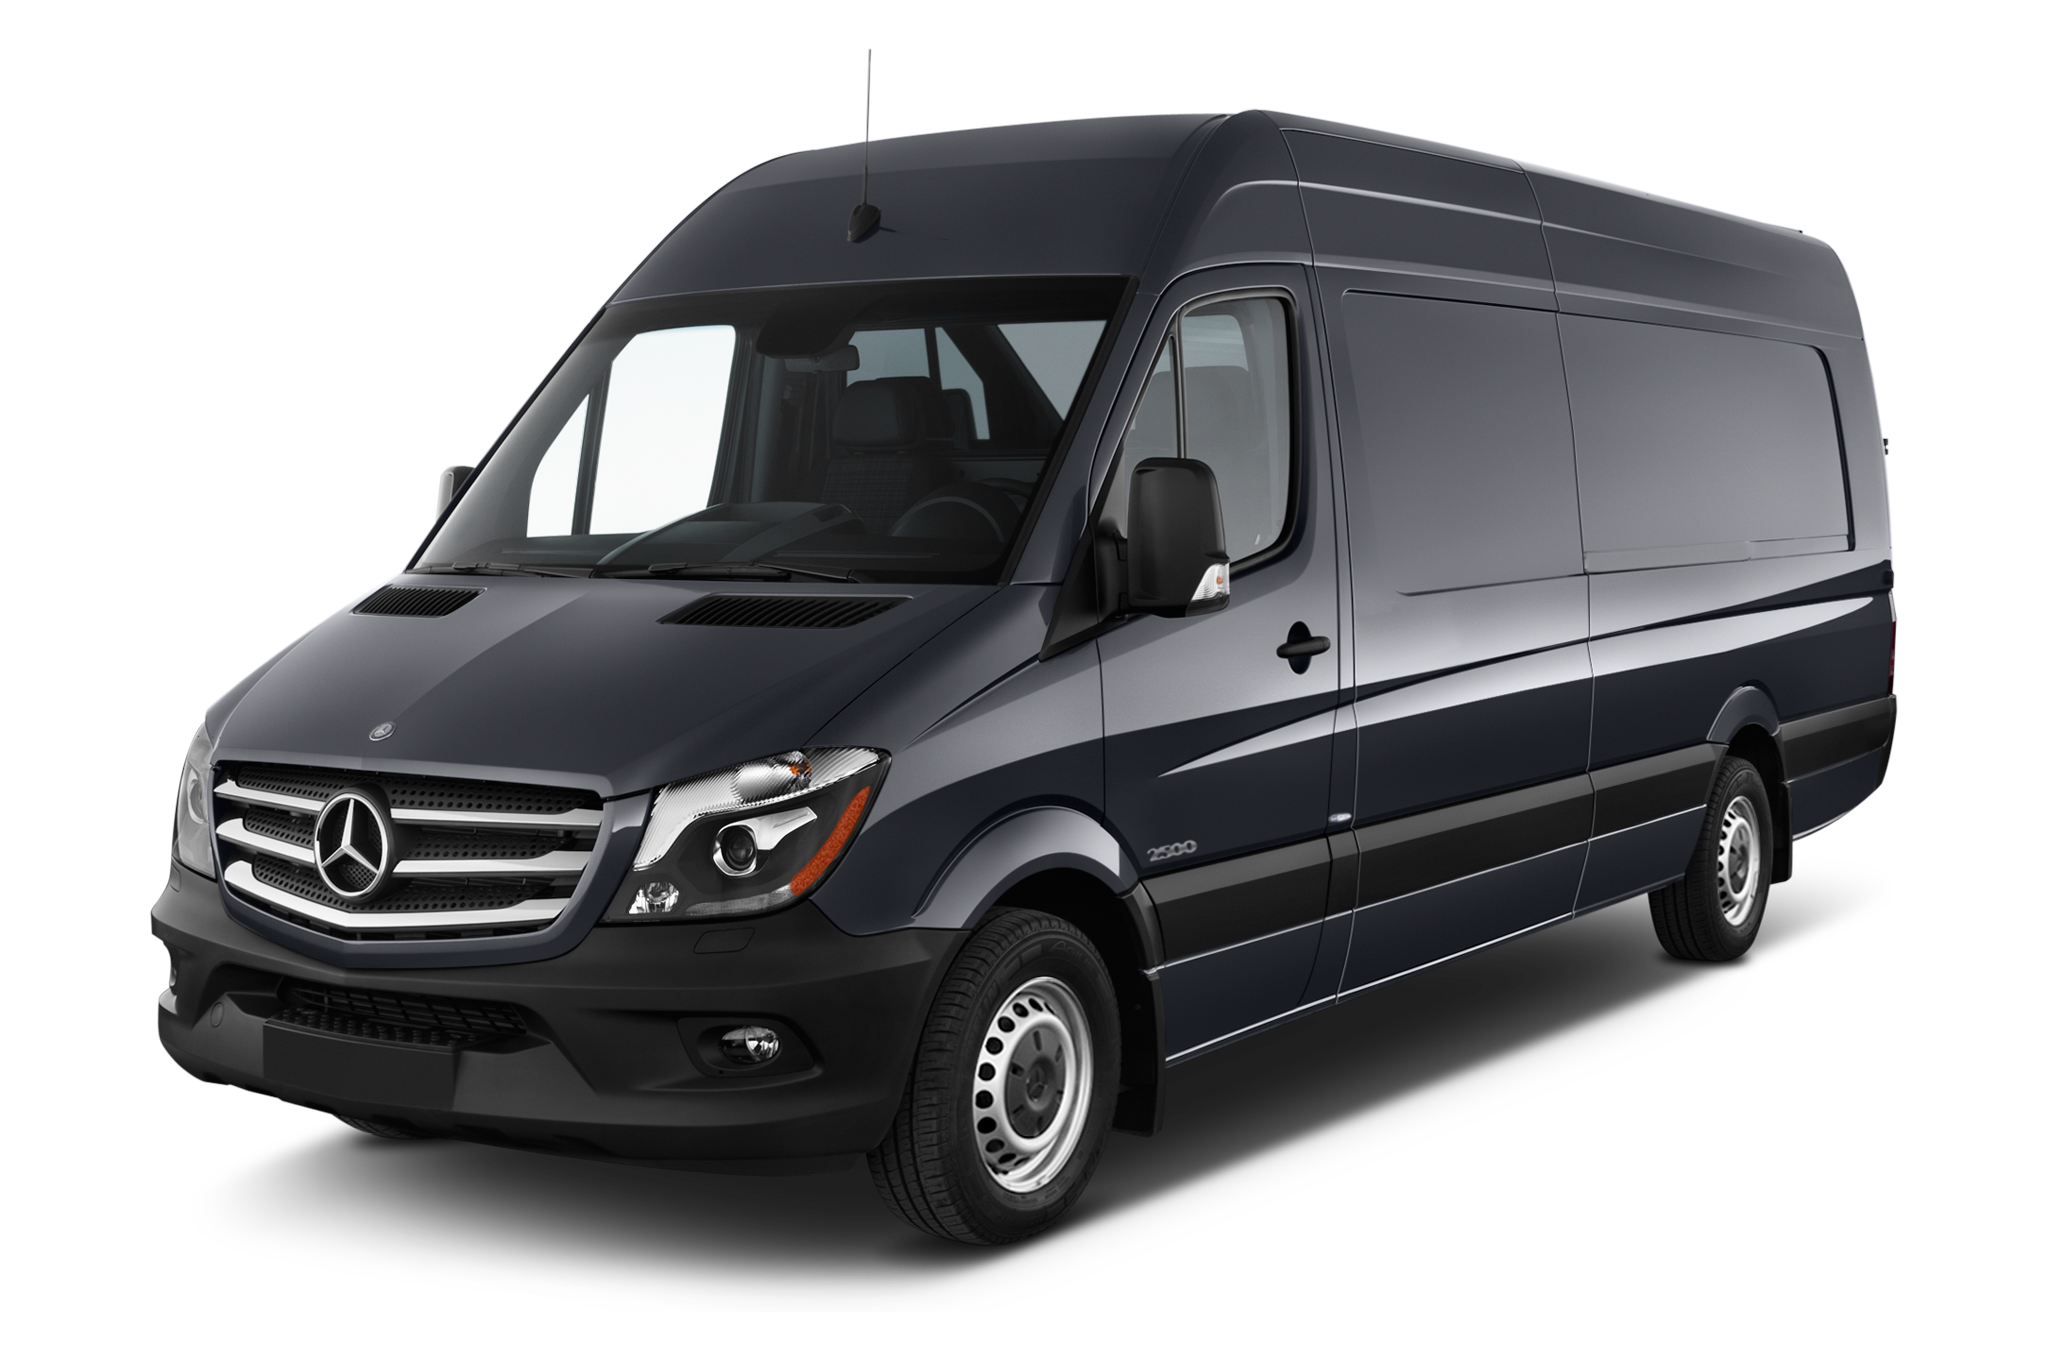 Mercedes sprinter extreme concept is a dumptruck unhinged for 2017 mercedes benz 2500 high roof i4